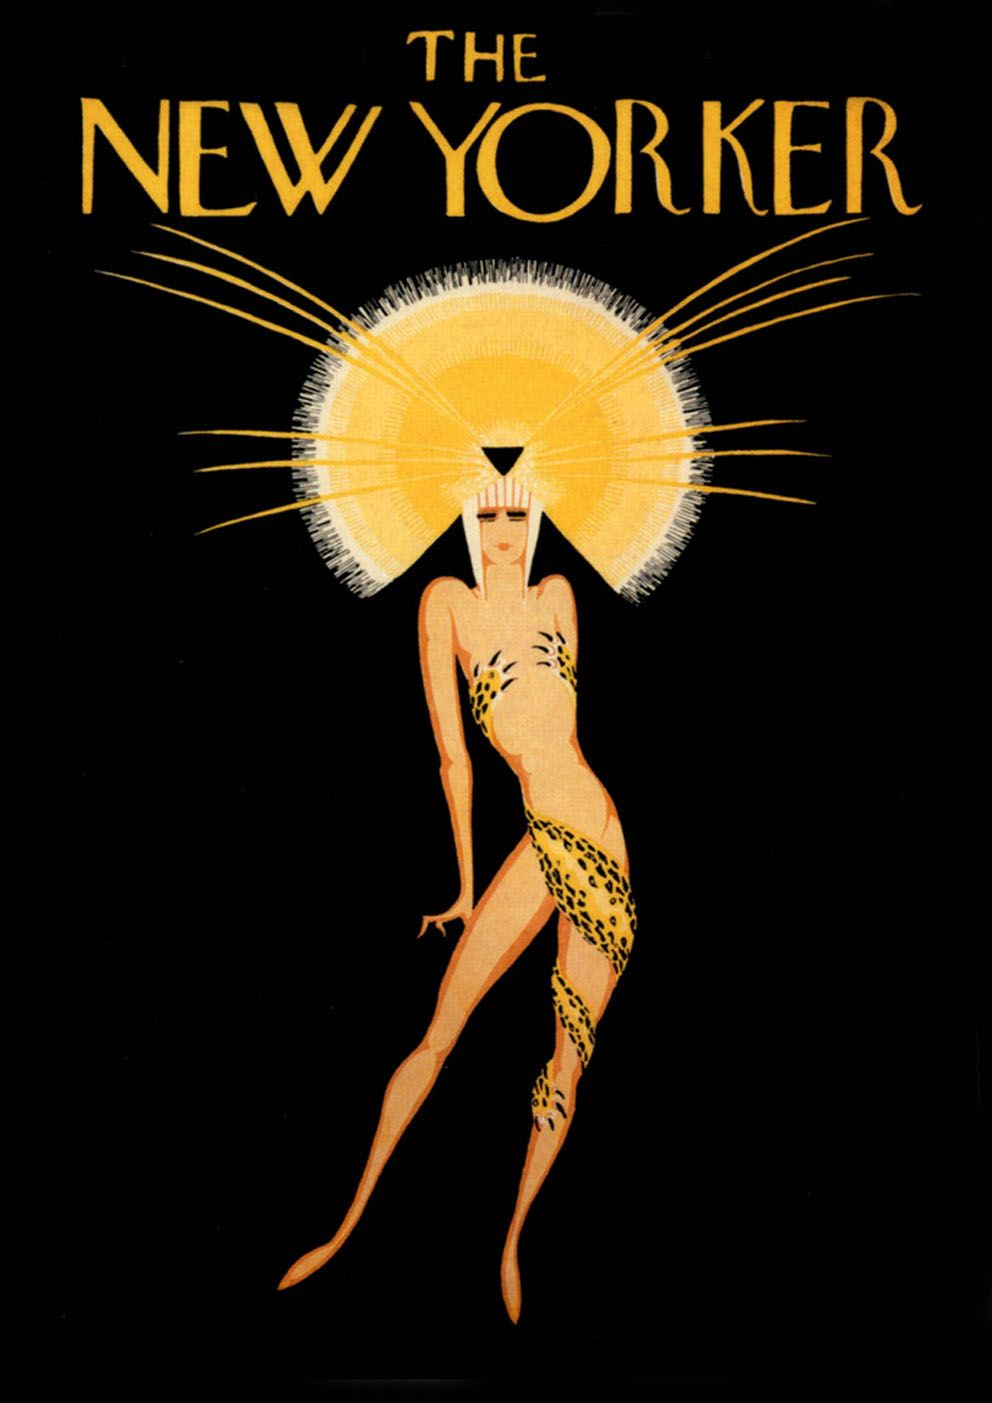 Cover art by Max Ree, 1925. I don't even care what's inside! The cover art is stunning... in the style of Erte.